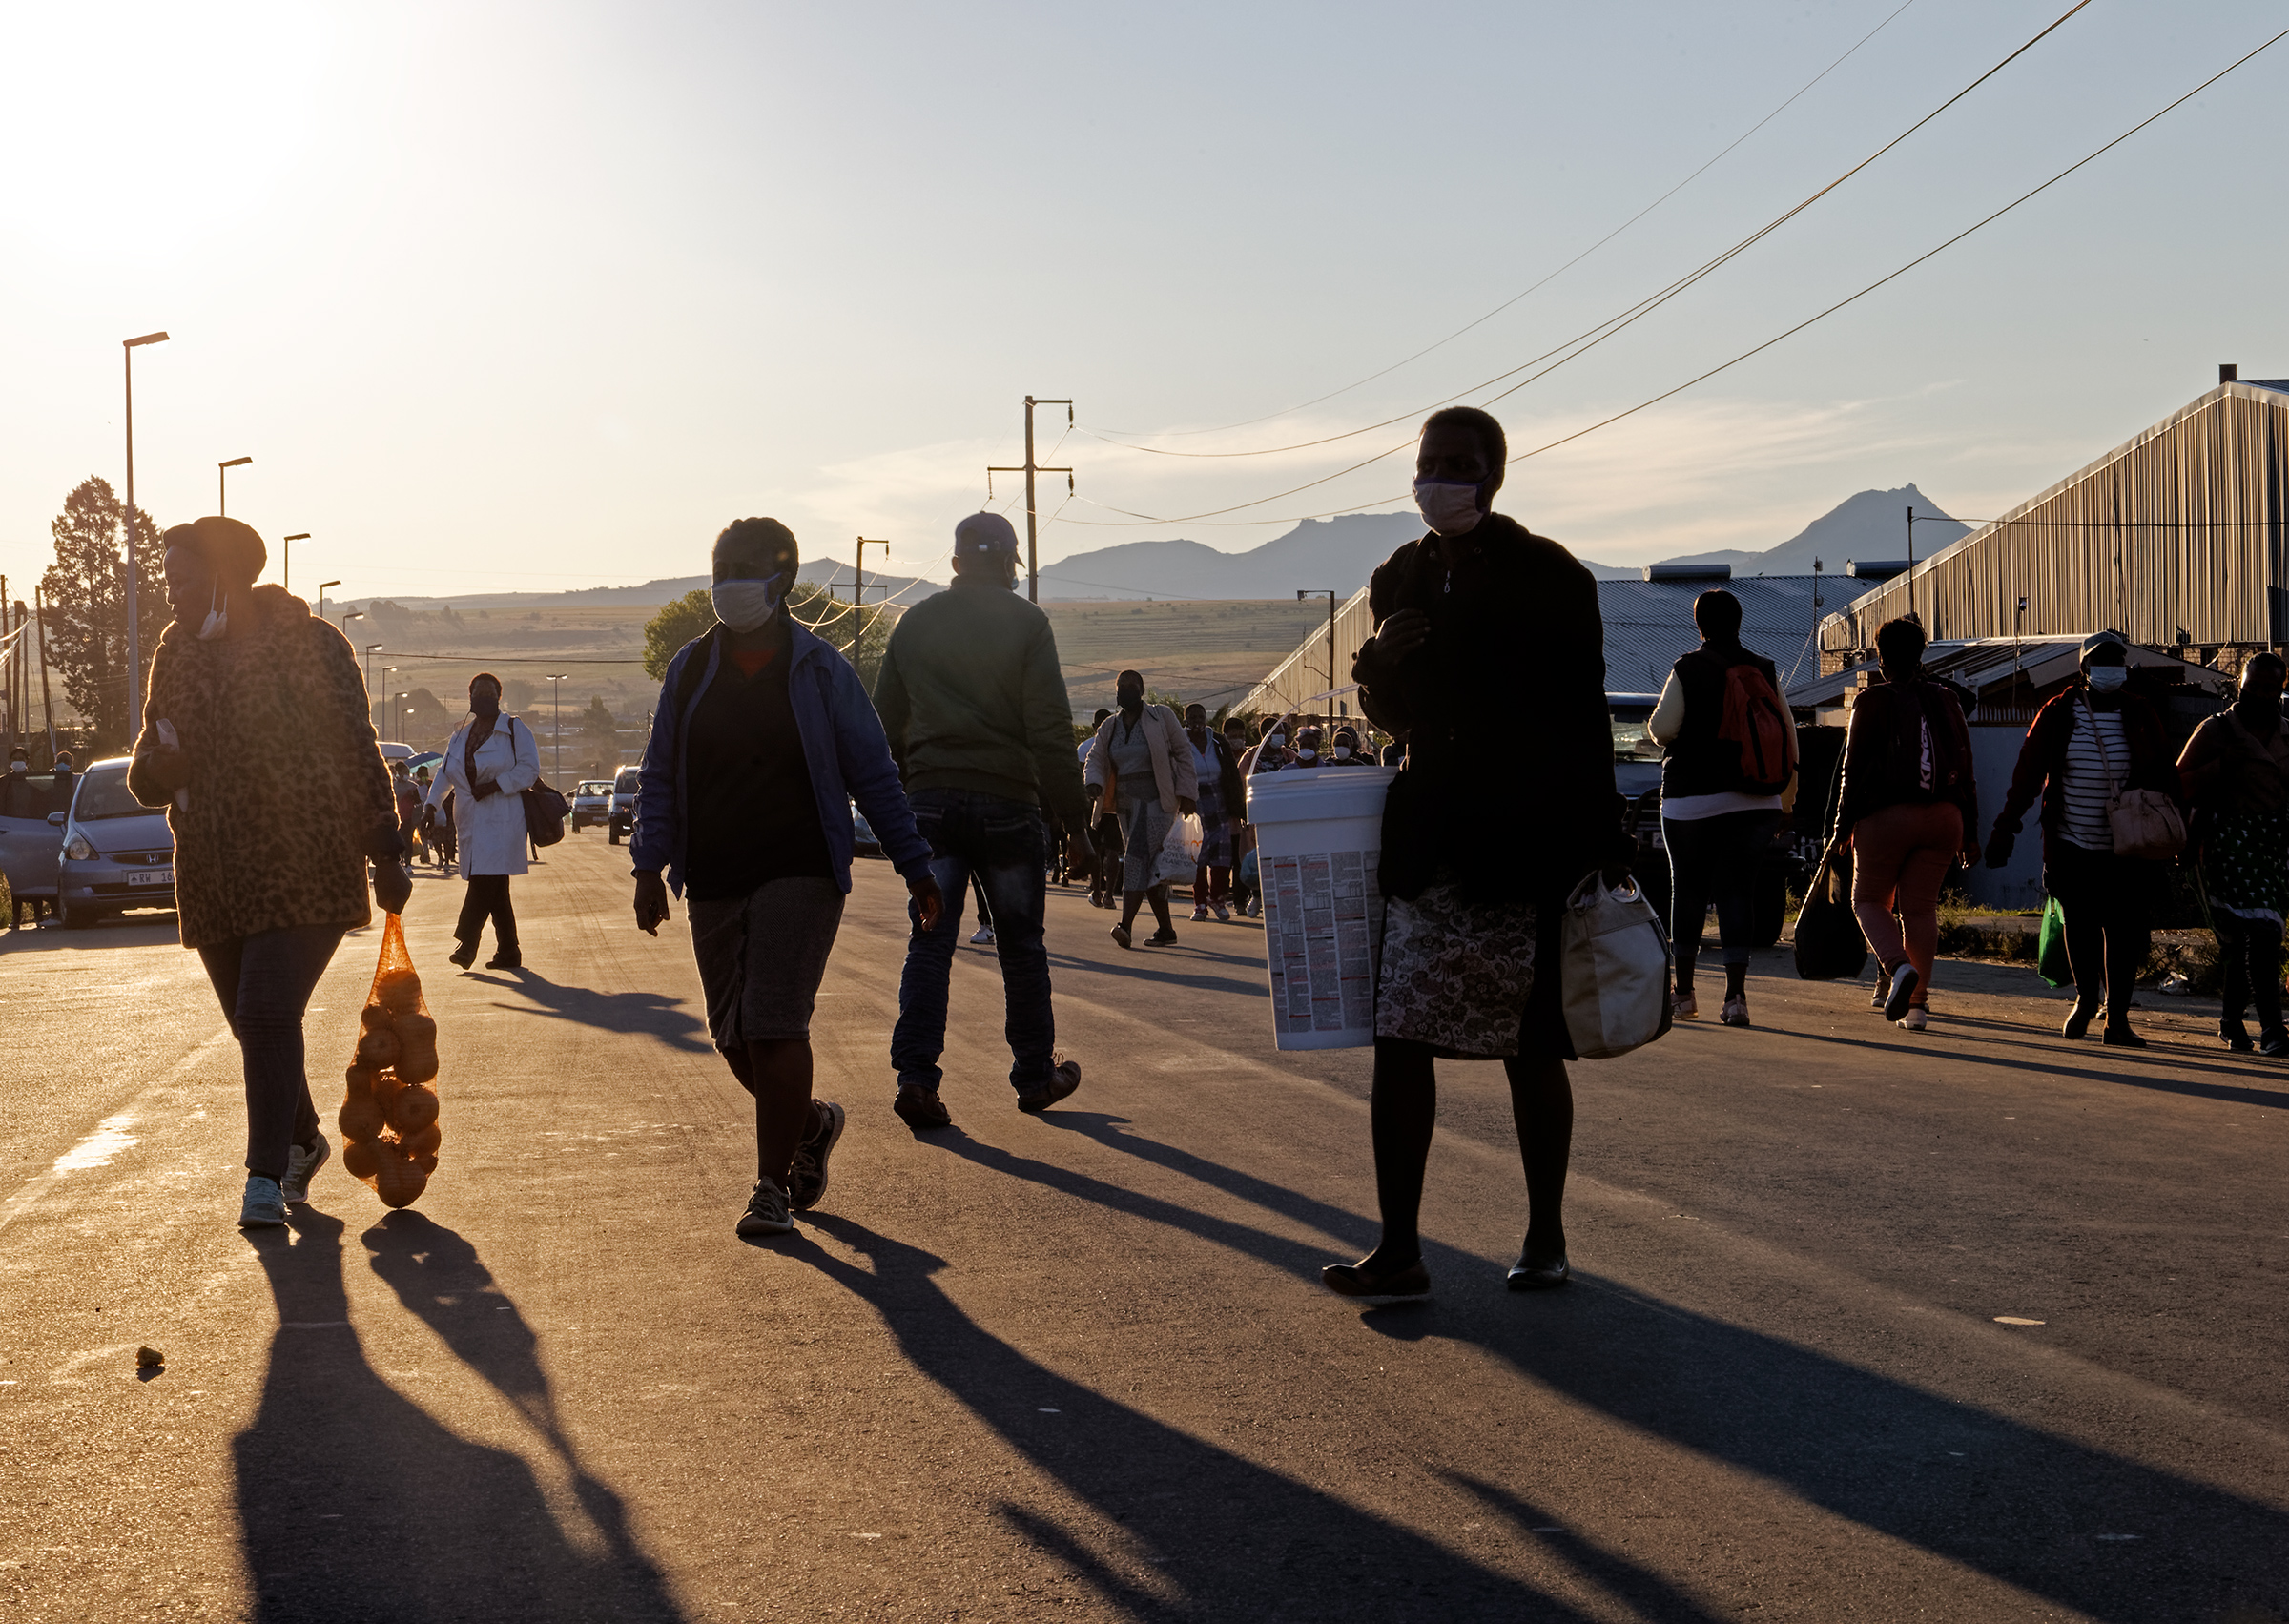 Factory workers head home at the end of the day in Maseru, Lesotho. Many travel by foot and live in nearby villages or surrounding areas as far as seven miles away.